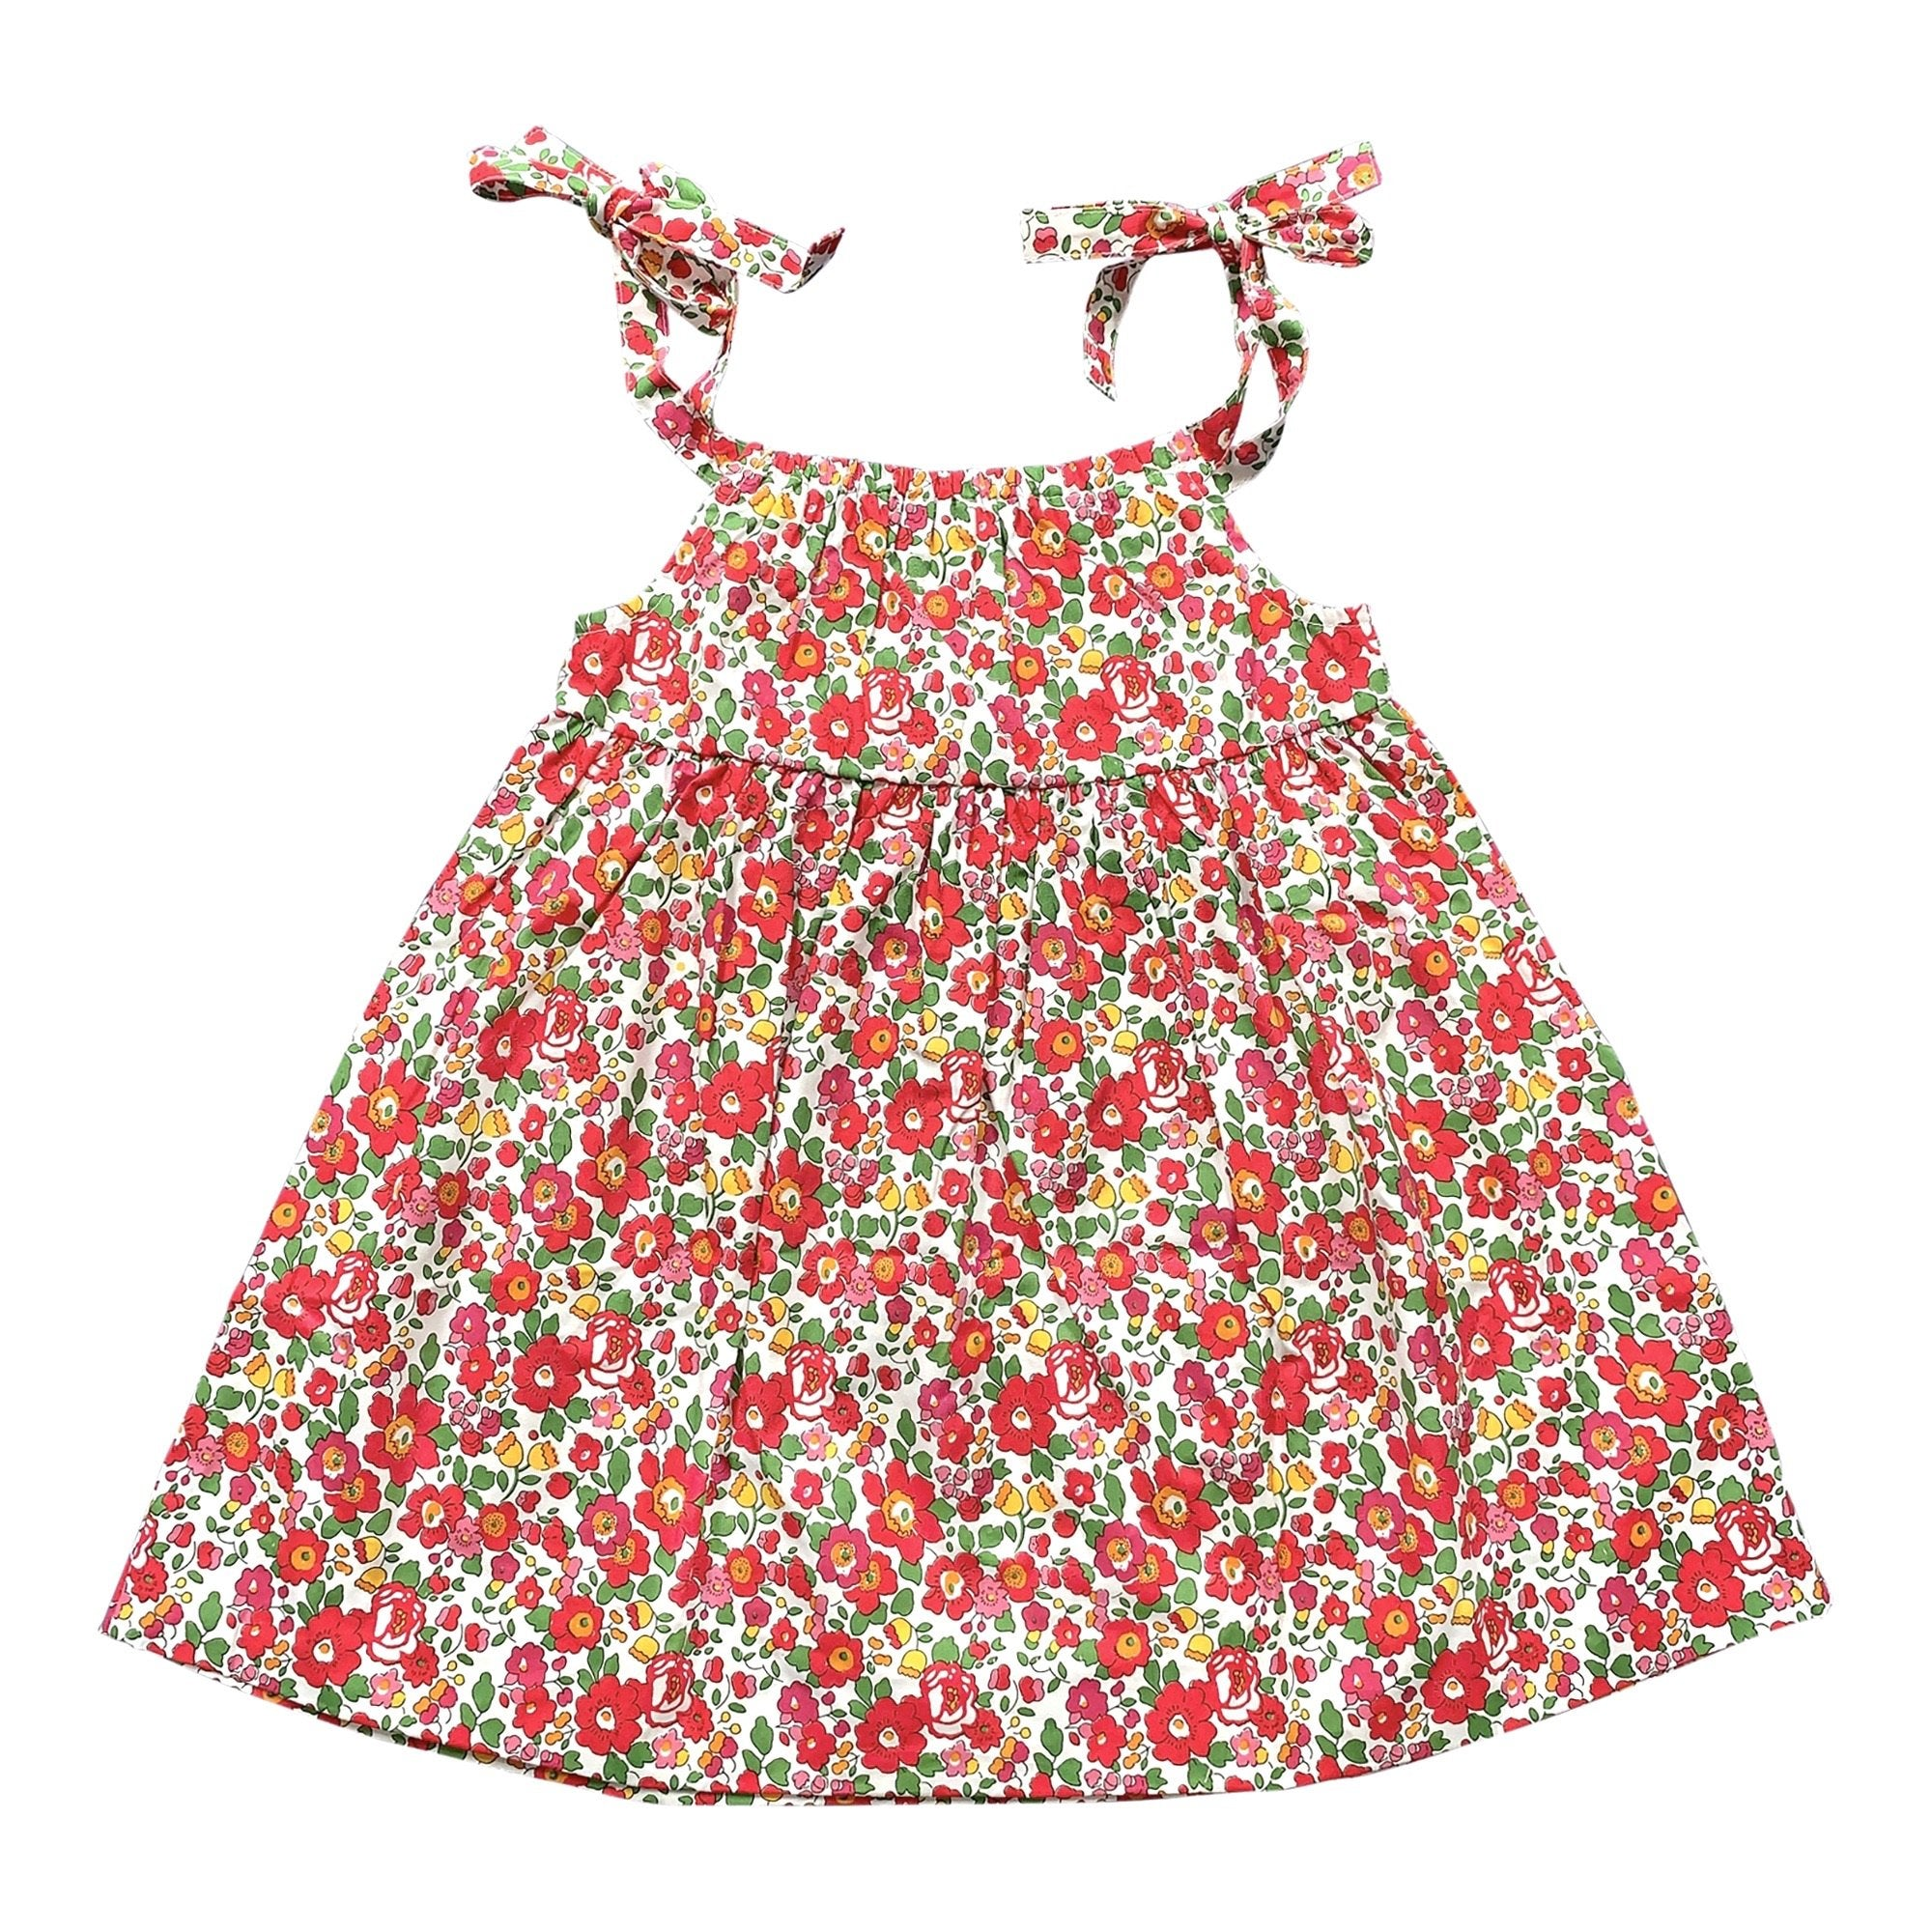 FLORRIE BLOOMERS IN RED LIBERTY PRINT